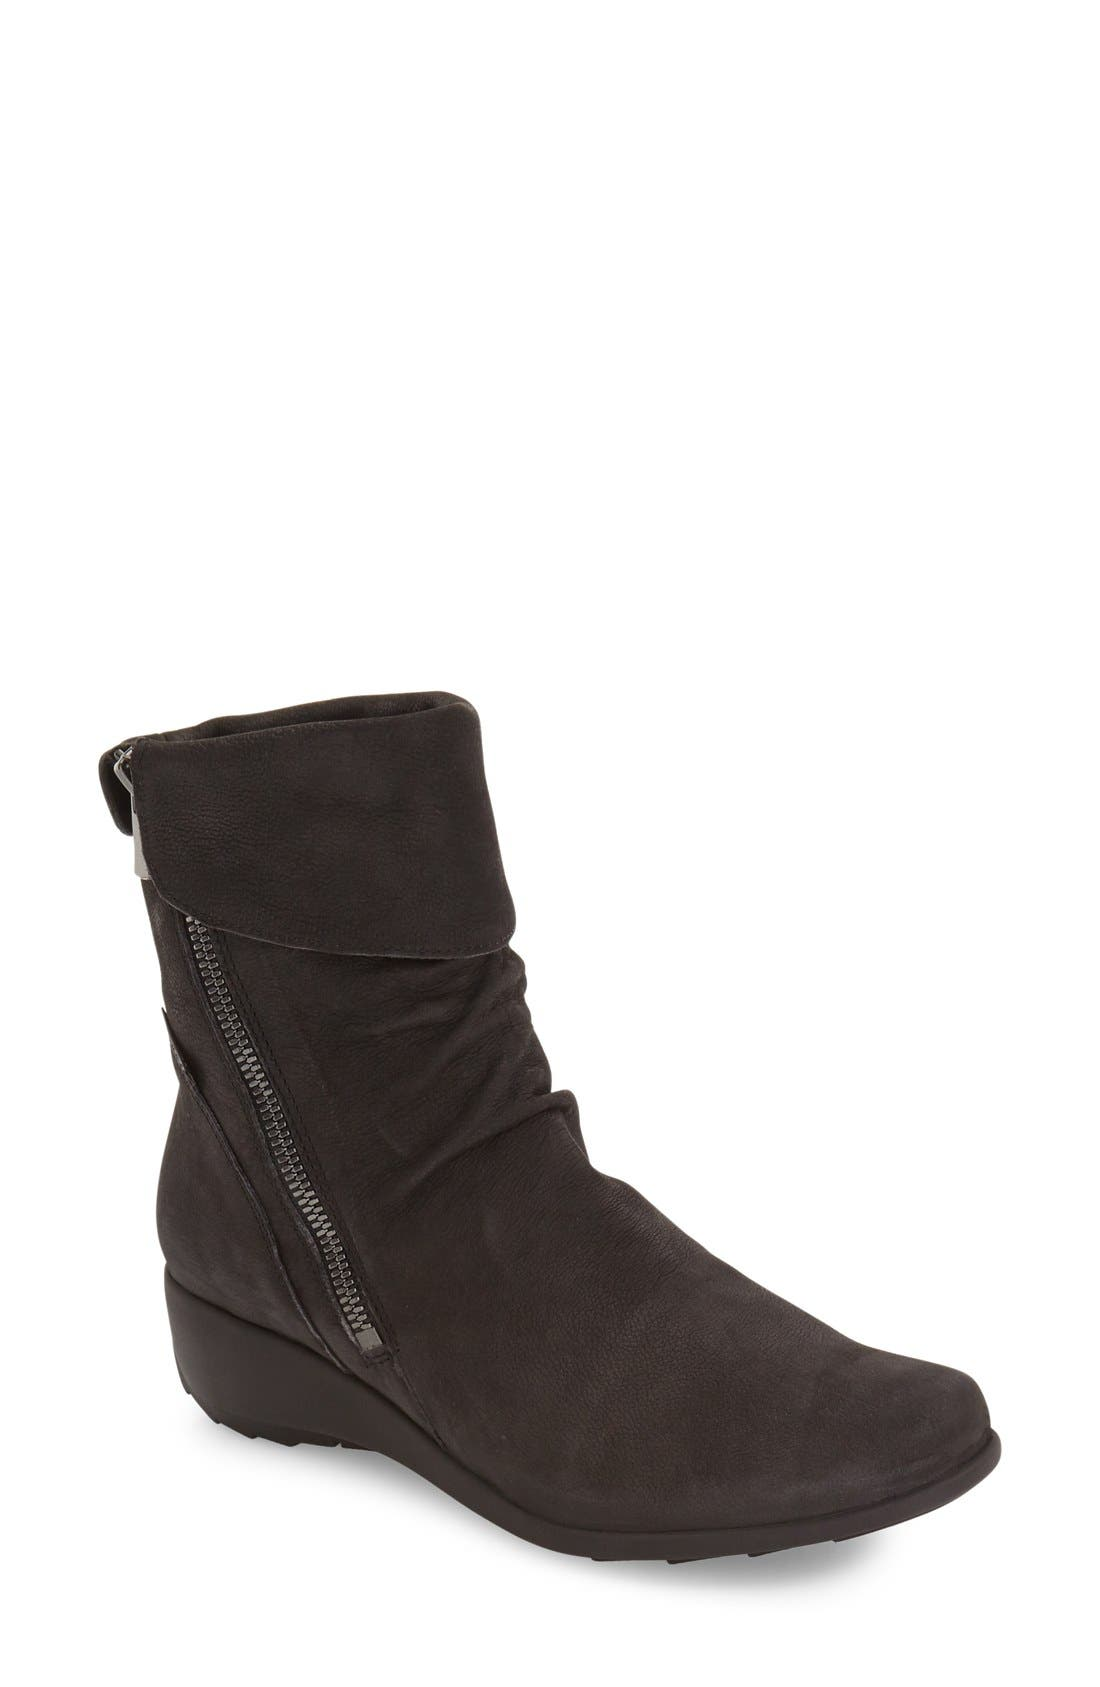 Alternate Image 1 Selected - Mephisto 'Seddy' Bootie (Online Only) (Women)